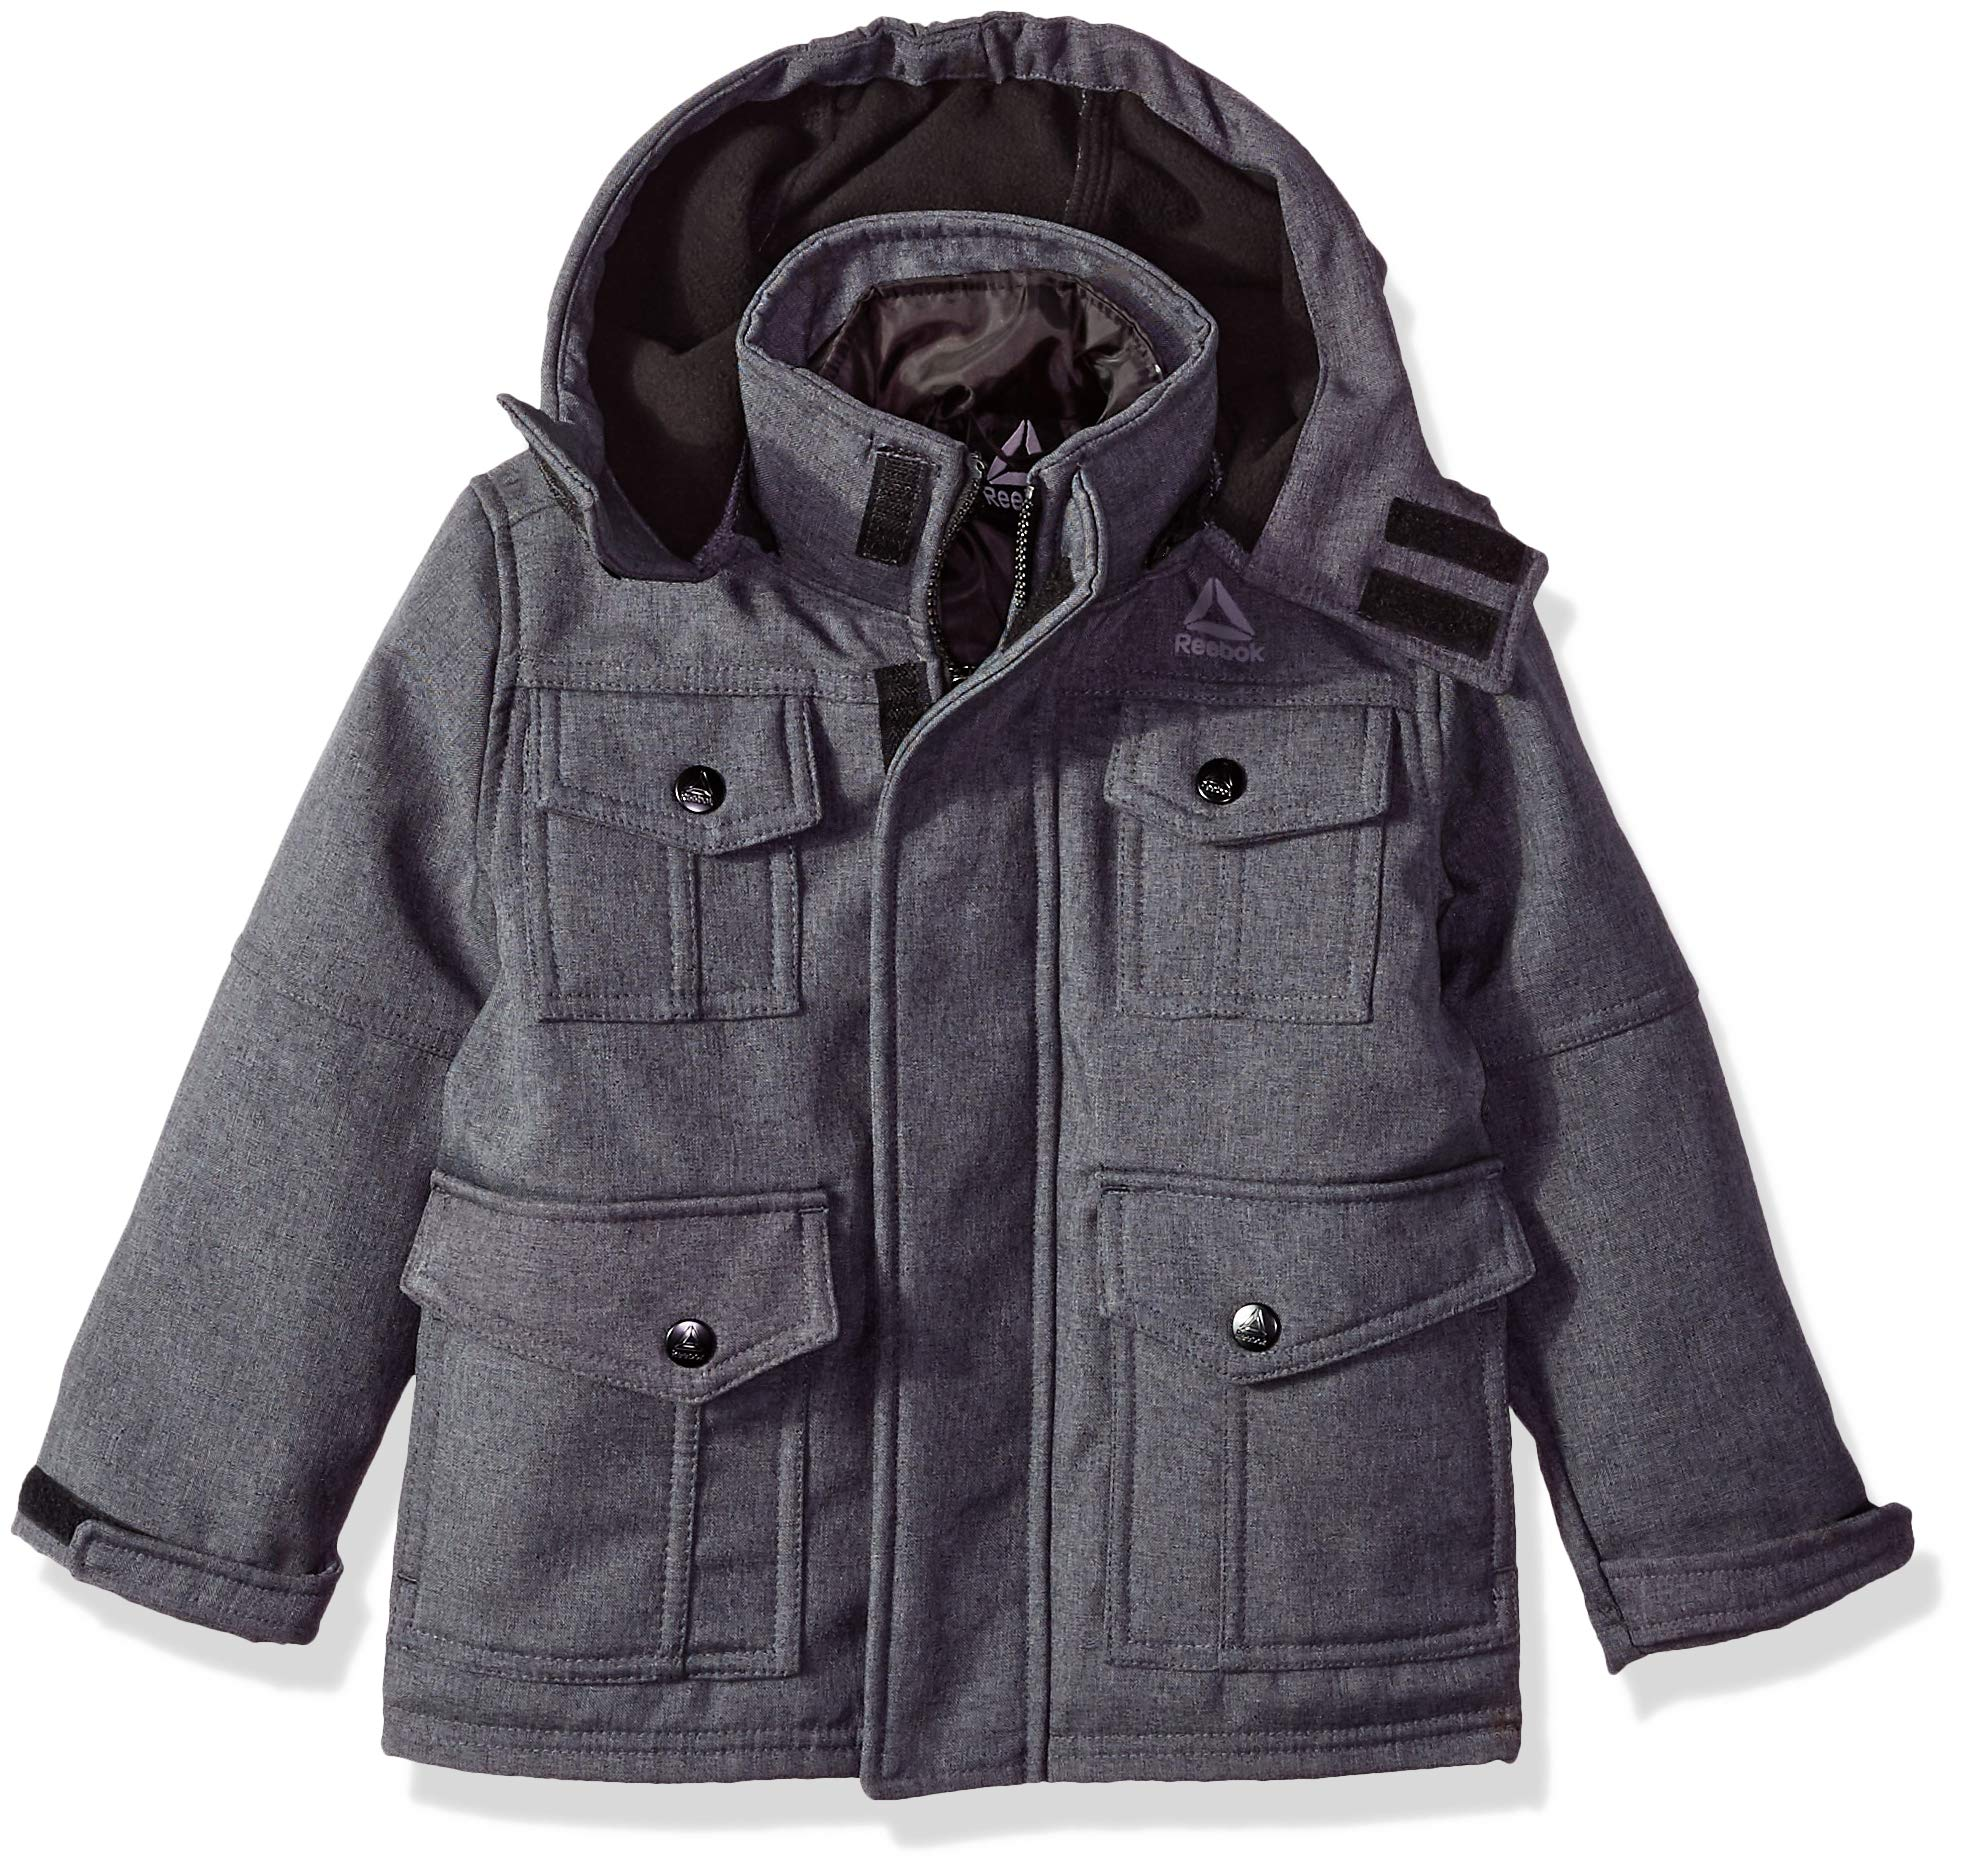 Reebok Boys' Big Active Pockey Systems Jacket, Charcoal, 8 by Reebok (Image #1)